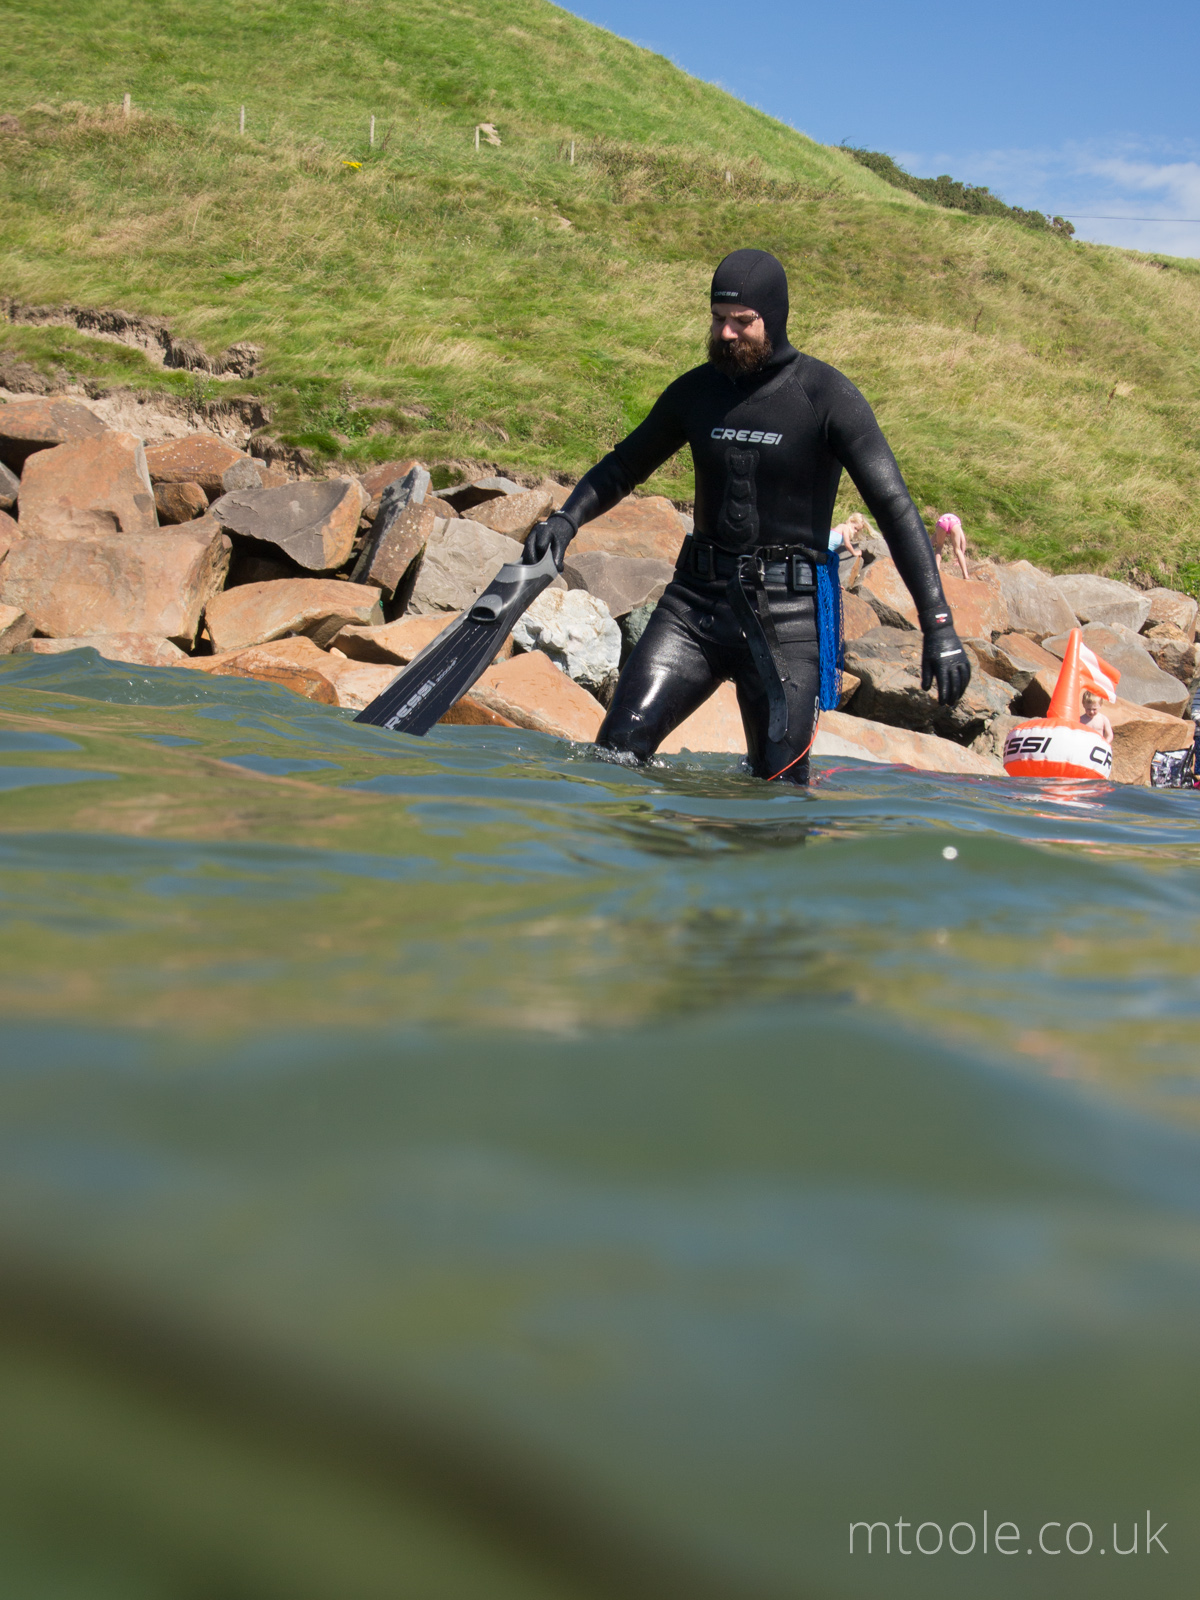 Spearfishing Aberdaron, Llyn Peninsula, Wales